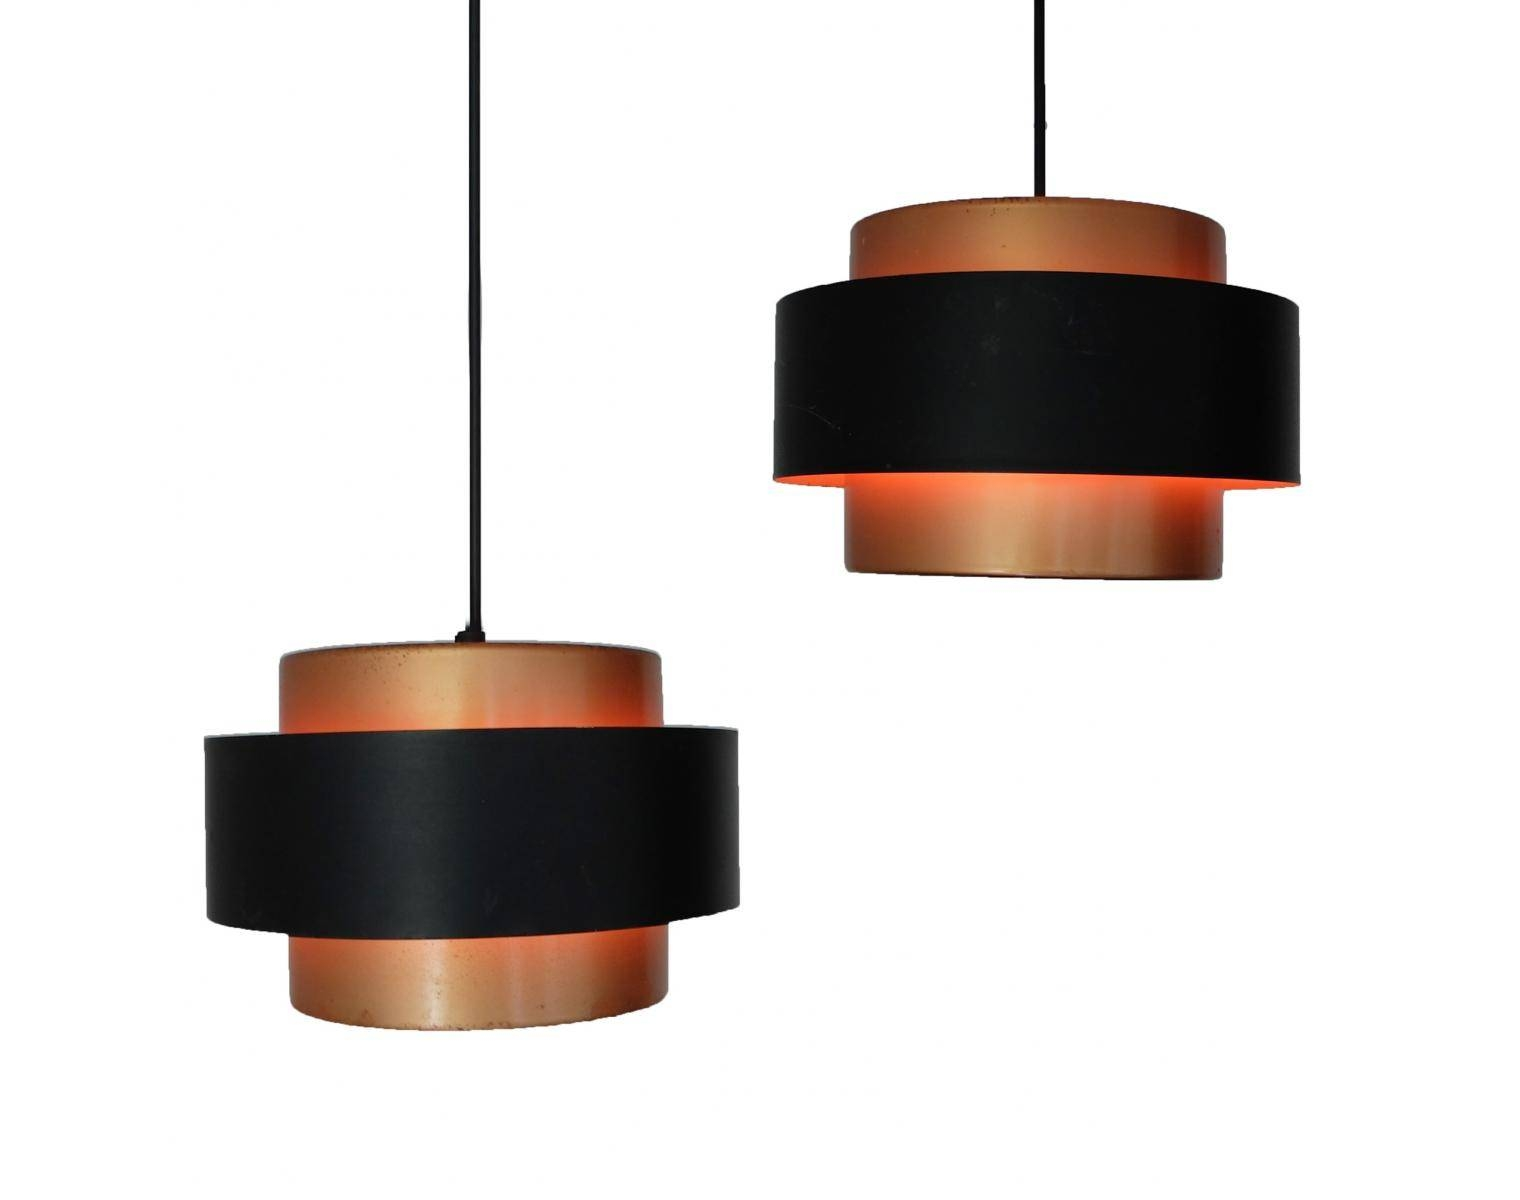 Juno Pendant Lampsjo Hammerborg For Fog & Morup, Set Of 2 For Pertaining To Juno Pendant Lighting (View 9 of 15)